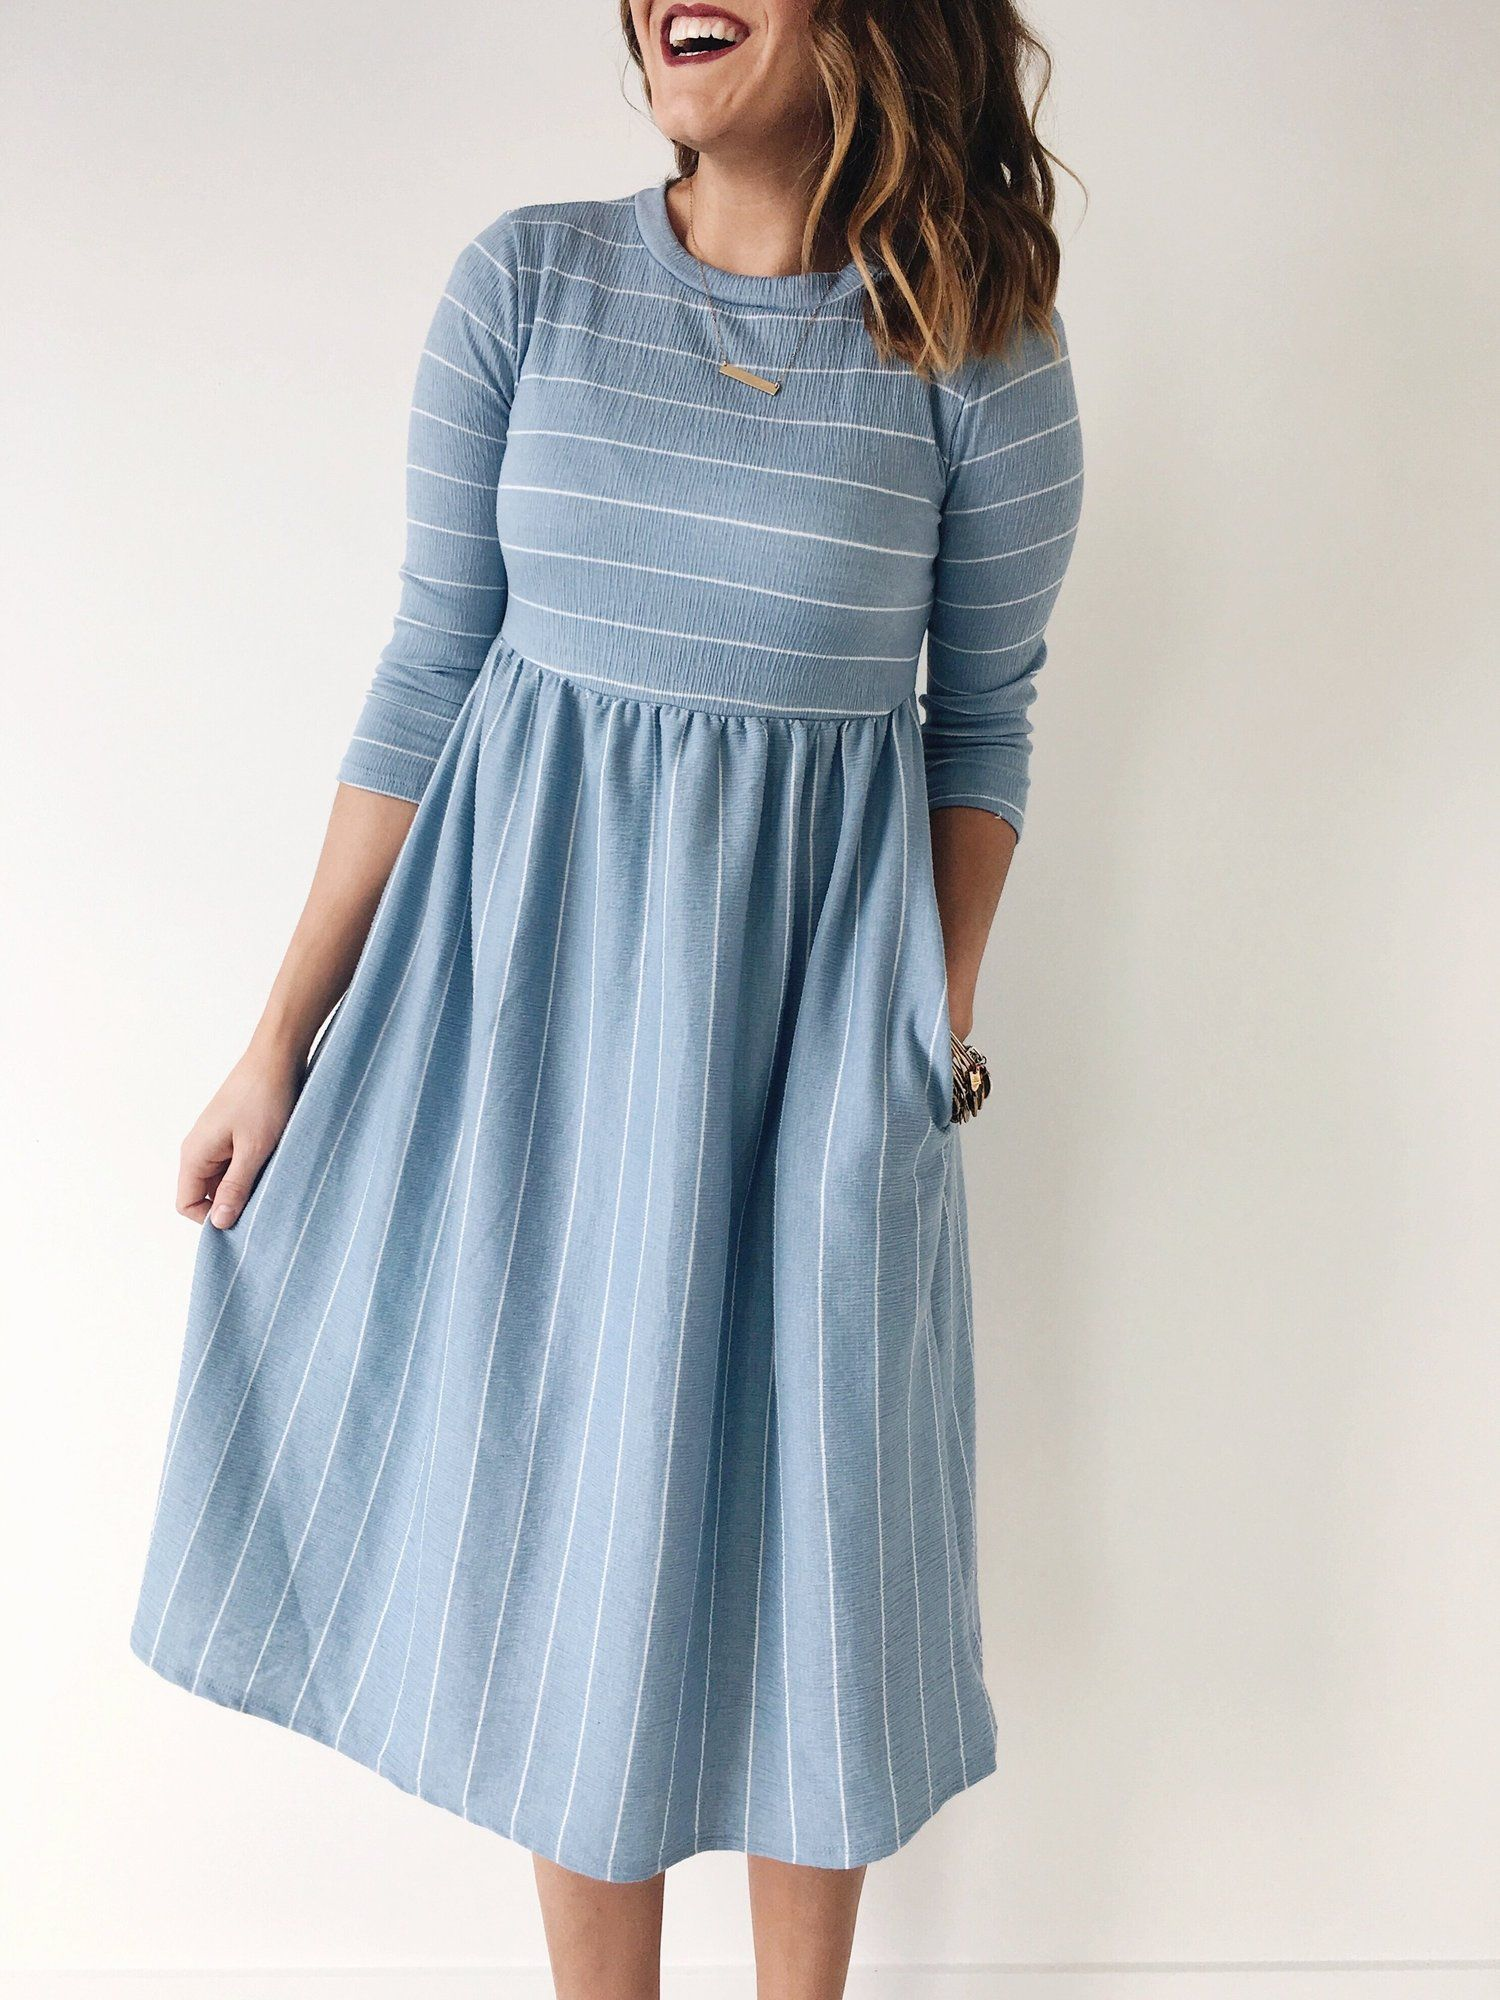 pinterest ROOLEE Clothing, Shoes & Jewelry : Women : dress for women ...